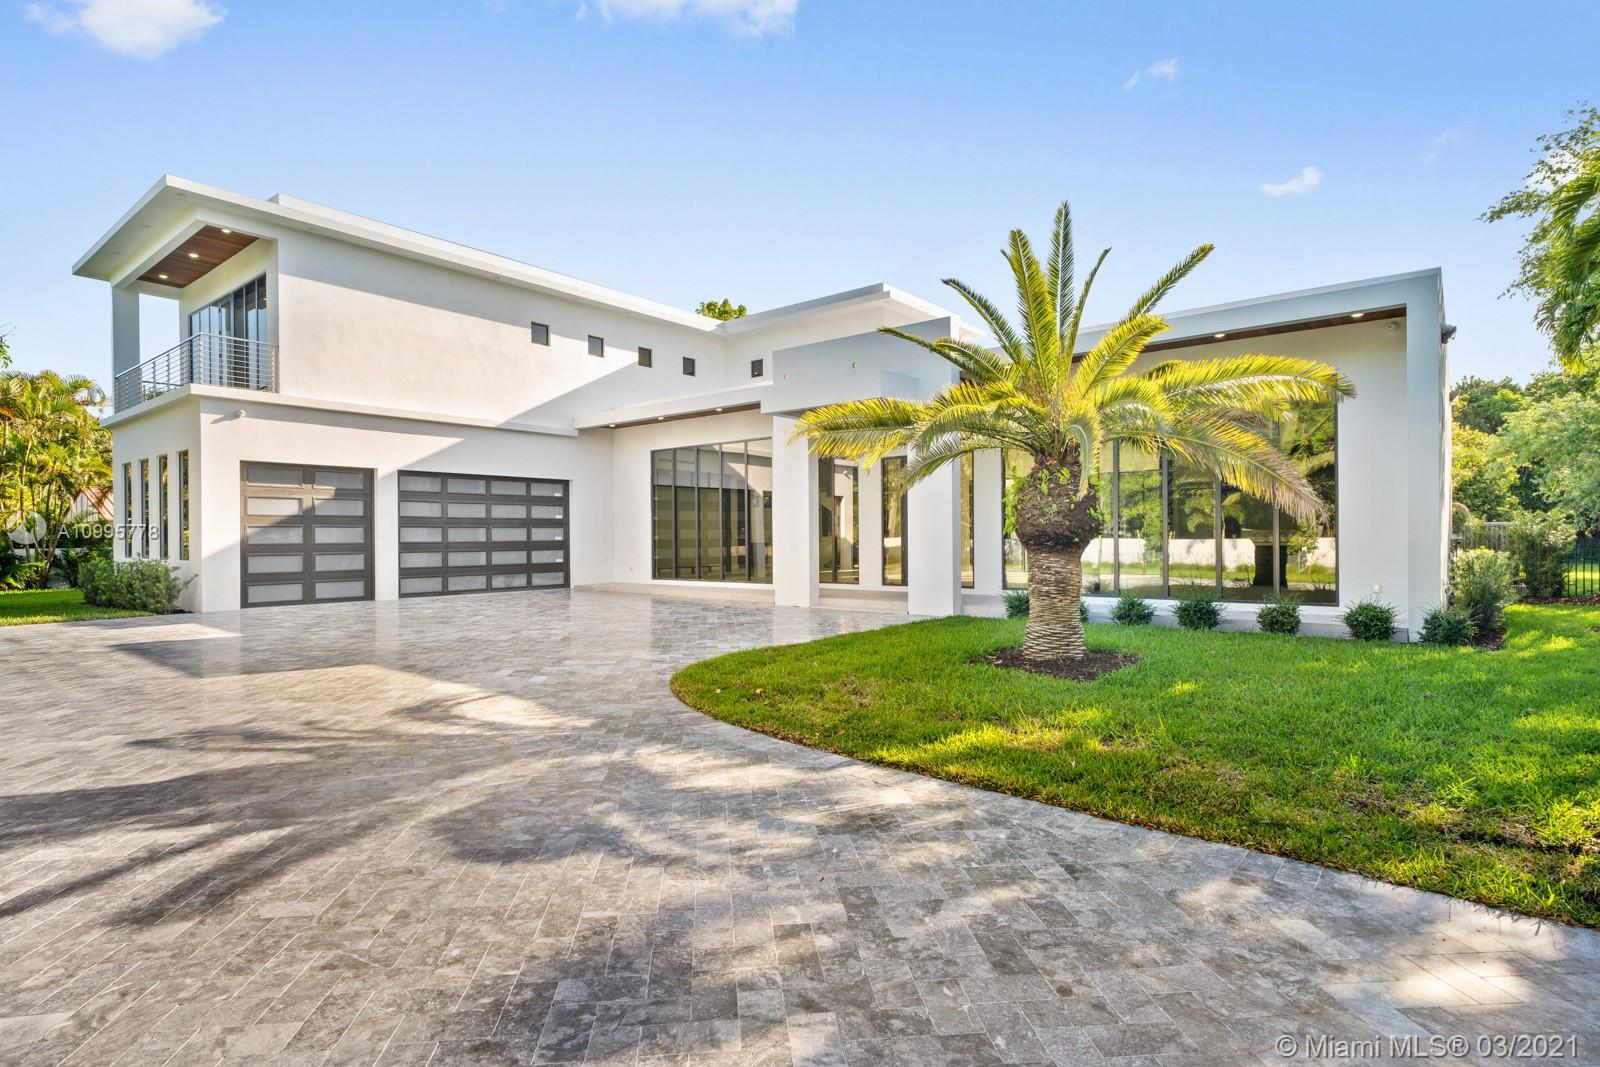 PRICE ADJUSTMENT MODERN GEM. Welcome to this stunning NEW CONSTRUCTION home in the sought after North Pinecrest neighborhood. Enjoy living and entertaining in this Exquisite Contemporary two story home with 5 generous suites, 5 1/2 bathroom's on a quiet cul-de-sac street. Highlights include an open concept gourmet kitchen with natural gas, custom cabinetry with top of the line appliances, oversized entertaining areas, soaring ceilings allowing for abundance of natural light to flow throughout, porcelain floors, large covered terrace, 3 car garage and large driveway for ample parking, elevator, impact windows and concrete roof. Enjoy the  pool with family and friends. Guest house with full kitchen can be added. Close to the best schools. Generator  ready. This home will not disappoint.